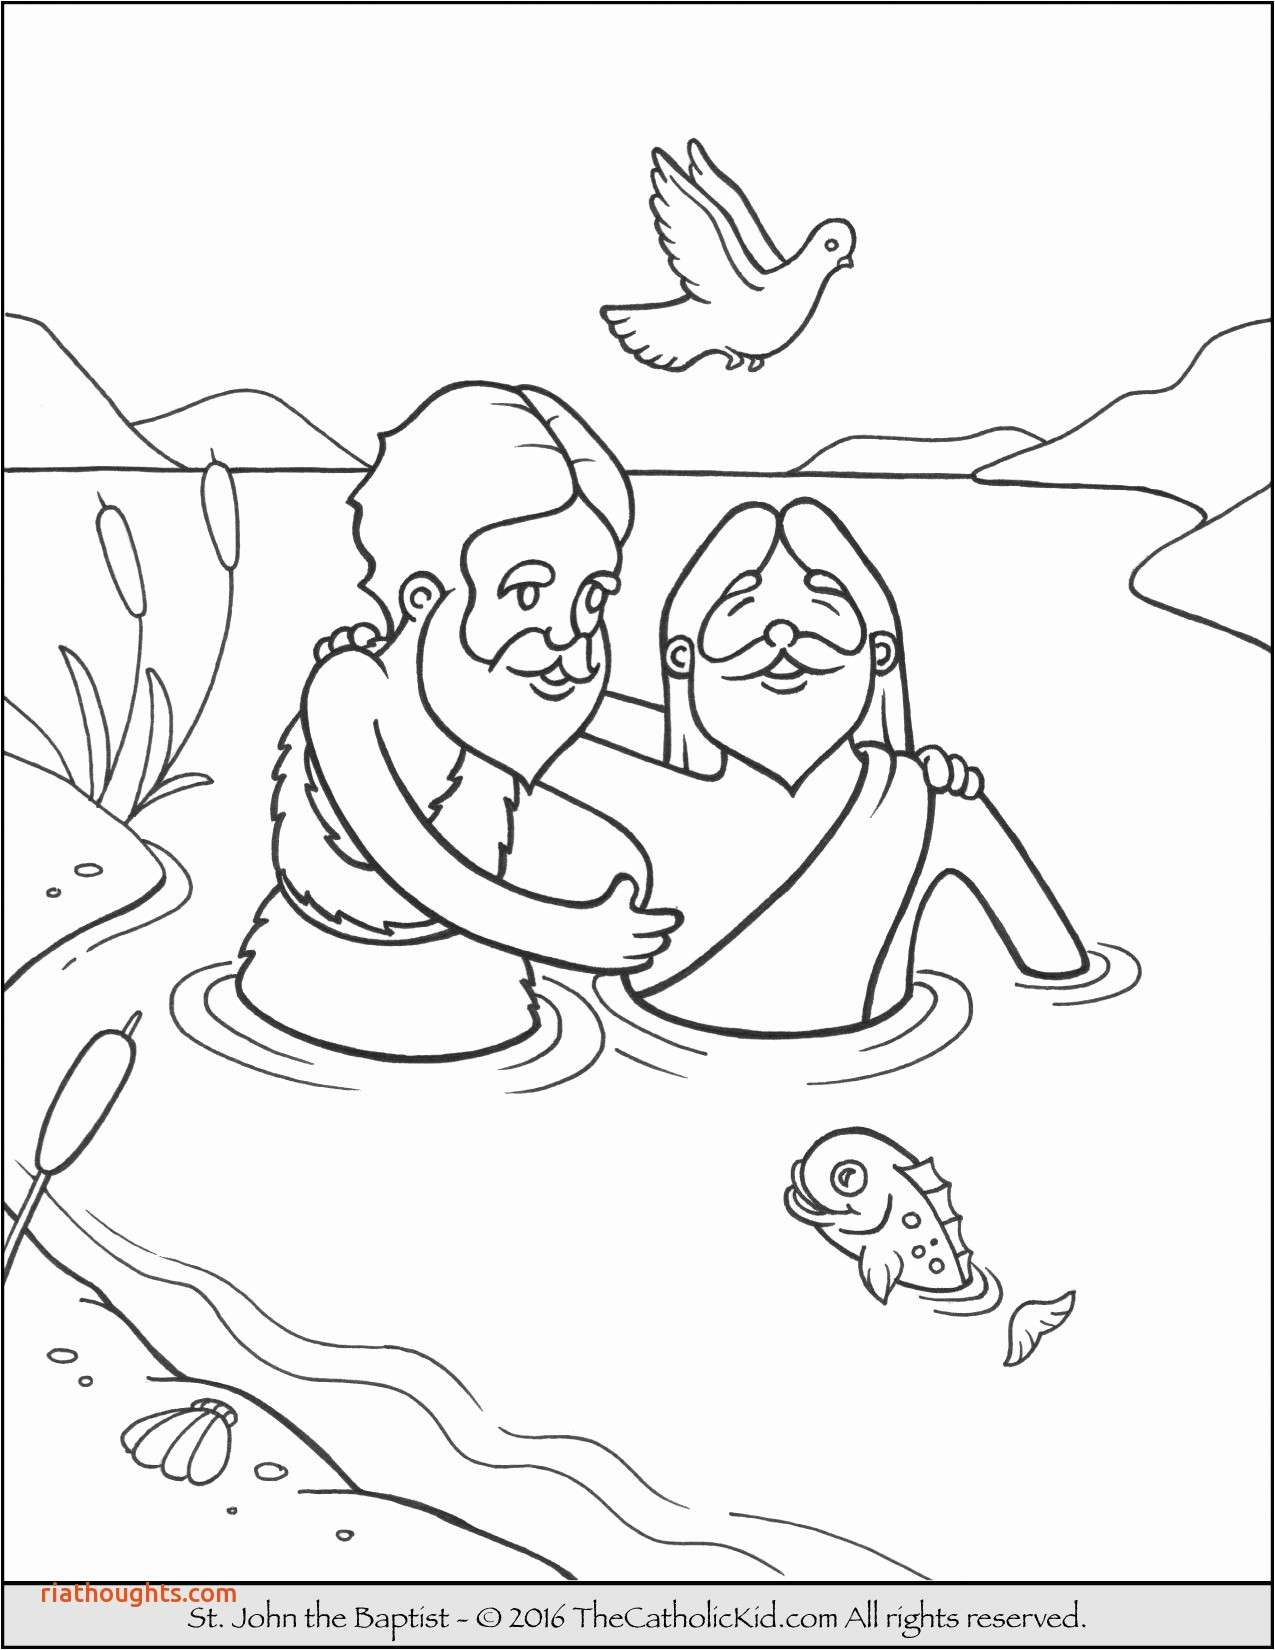 Christmas Coloring Pages For Upper Elementary With Primary